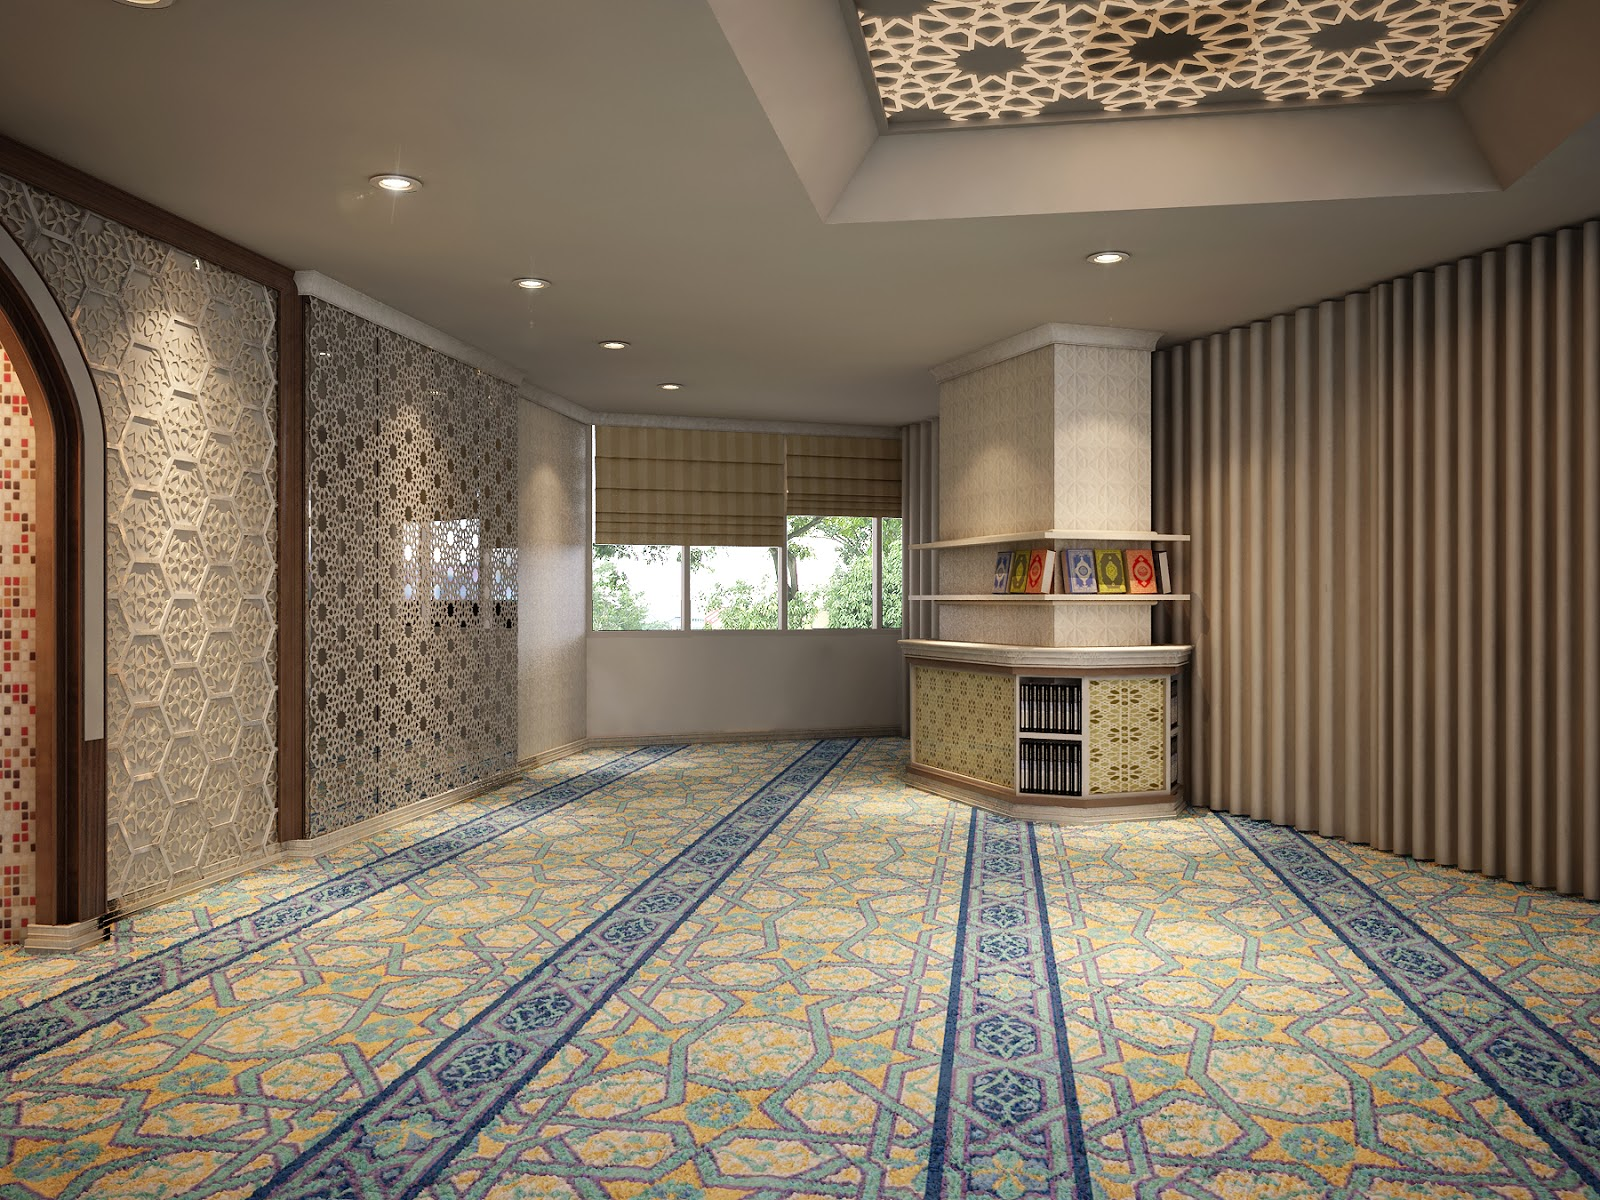 Centara design interior design works for Interior designers and decorators